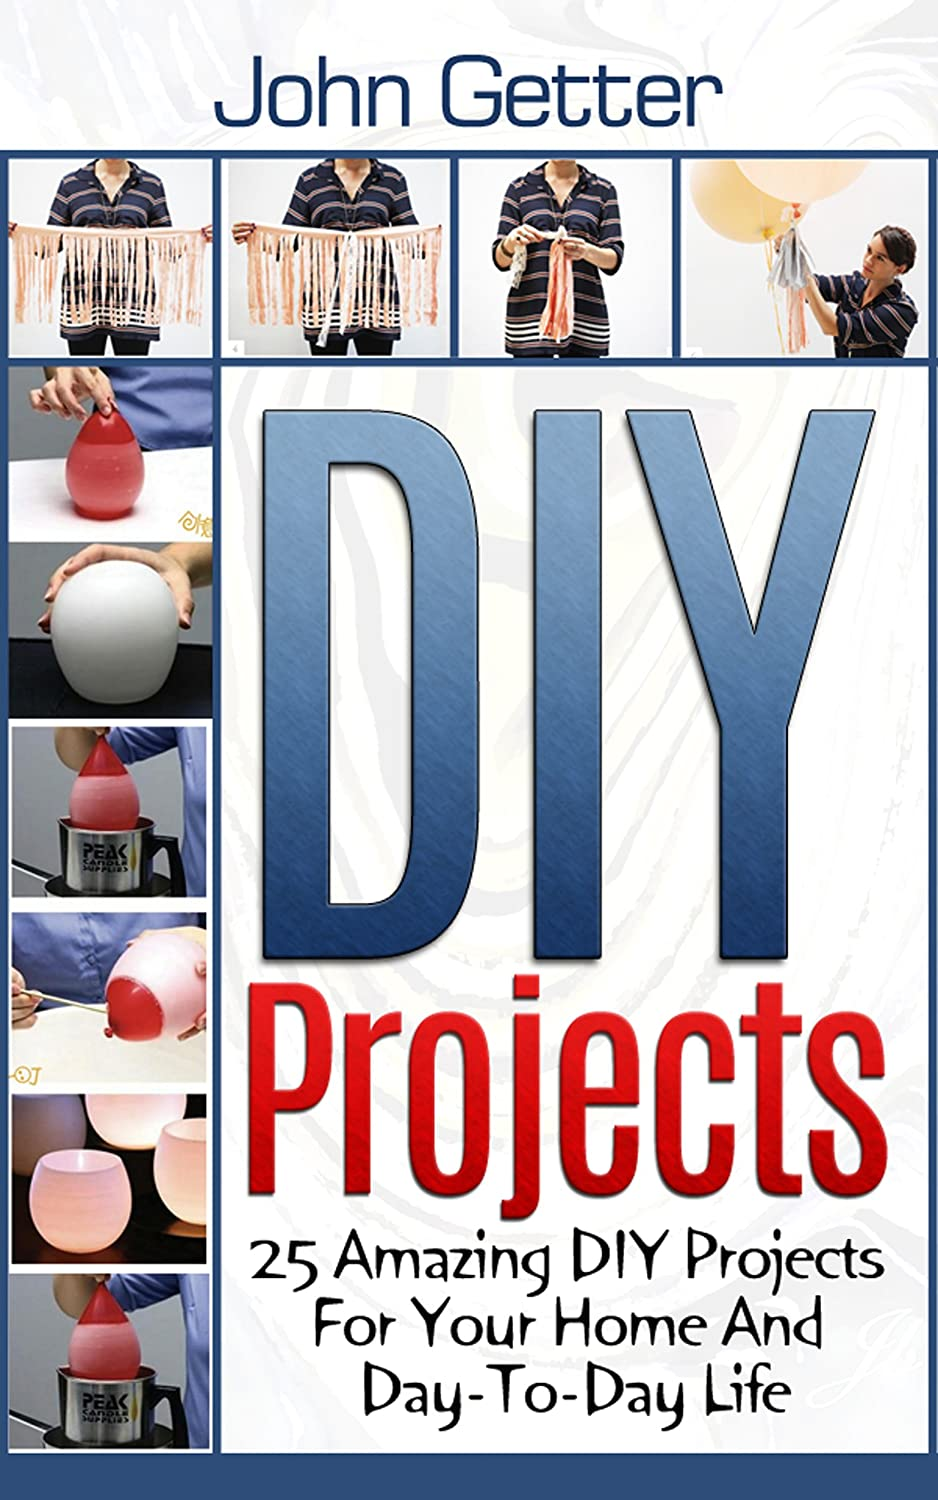 http://www.amazon.com/DIY-Projects-Day-To-Day-organizing-decorating-ebook/dp/B00OPEQ81C/ref=as_sl_pc_ss_til?tag=lettfromahome-20&linkCode=w01&linkId=N4RZQBE4PQ6MSJFA&creativeASIN=B00OPEQ81C